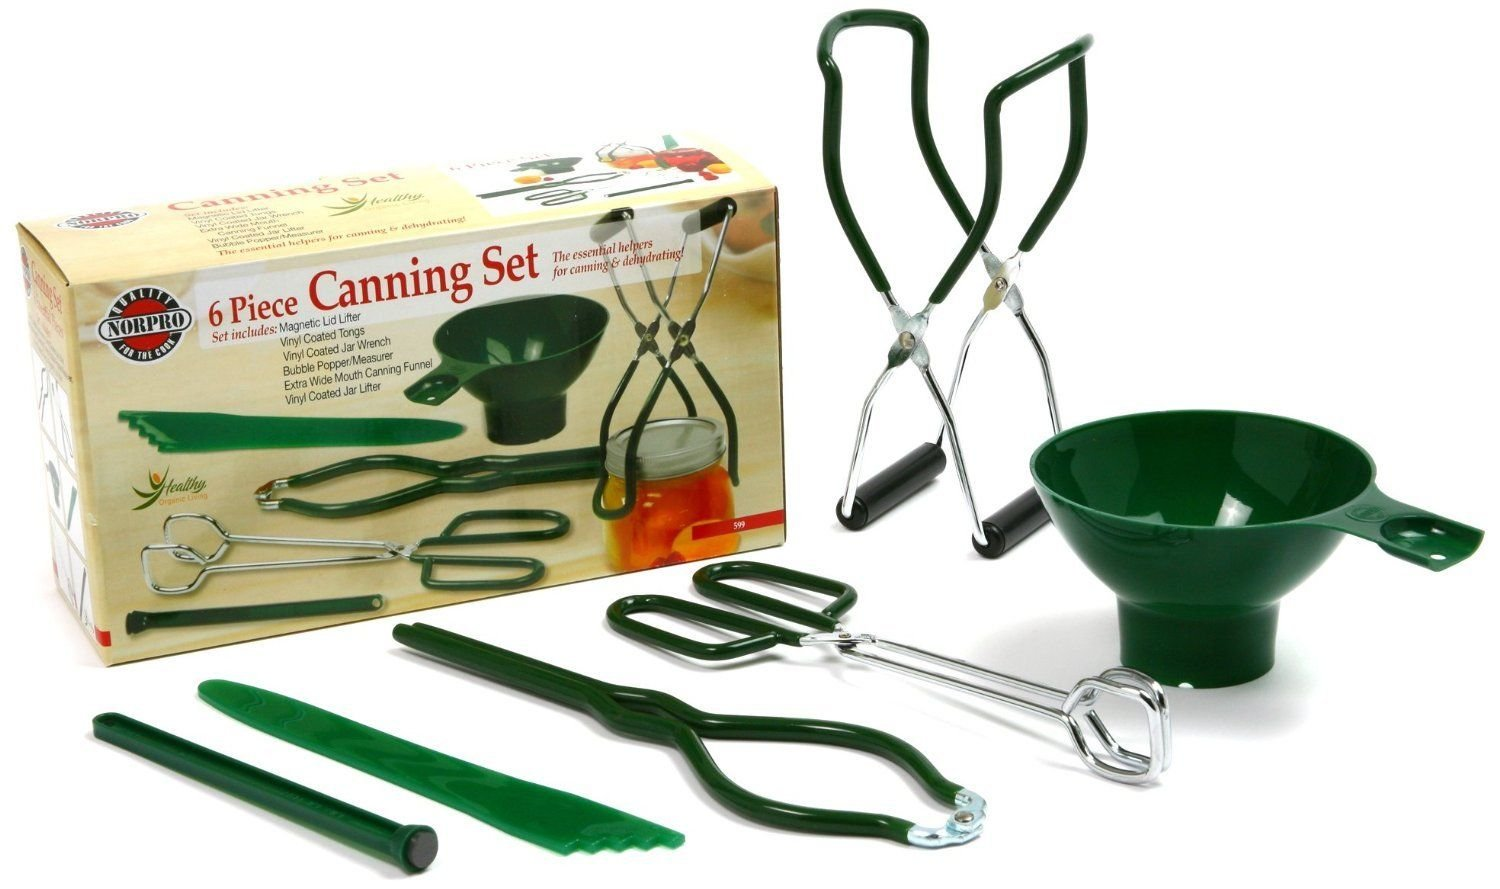 Norpro 6 Piece Canning Set, Canning Supplies, Preserving, New,